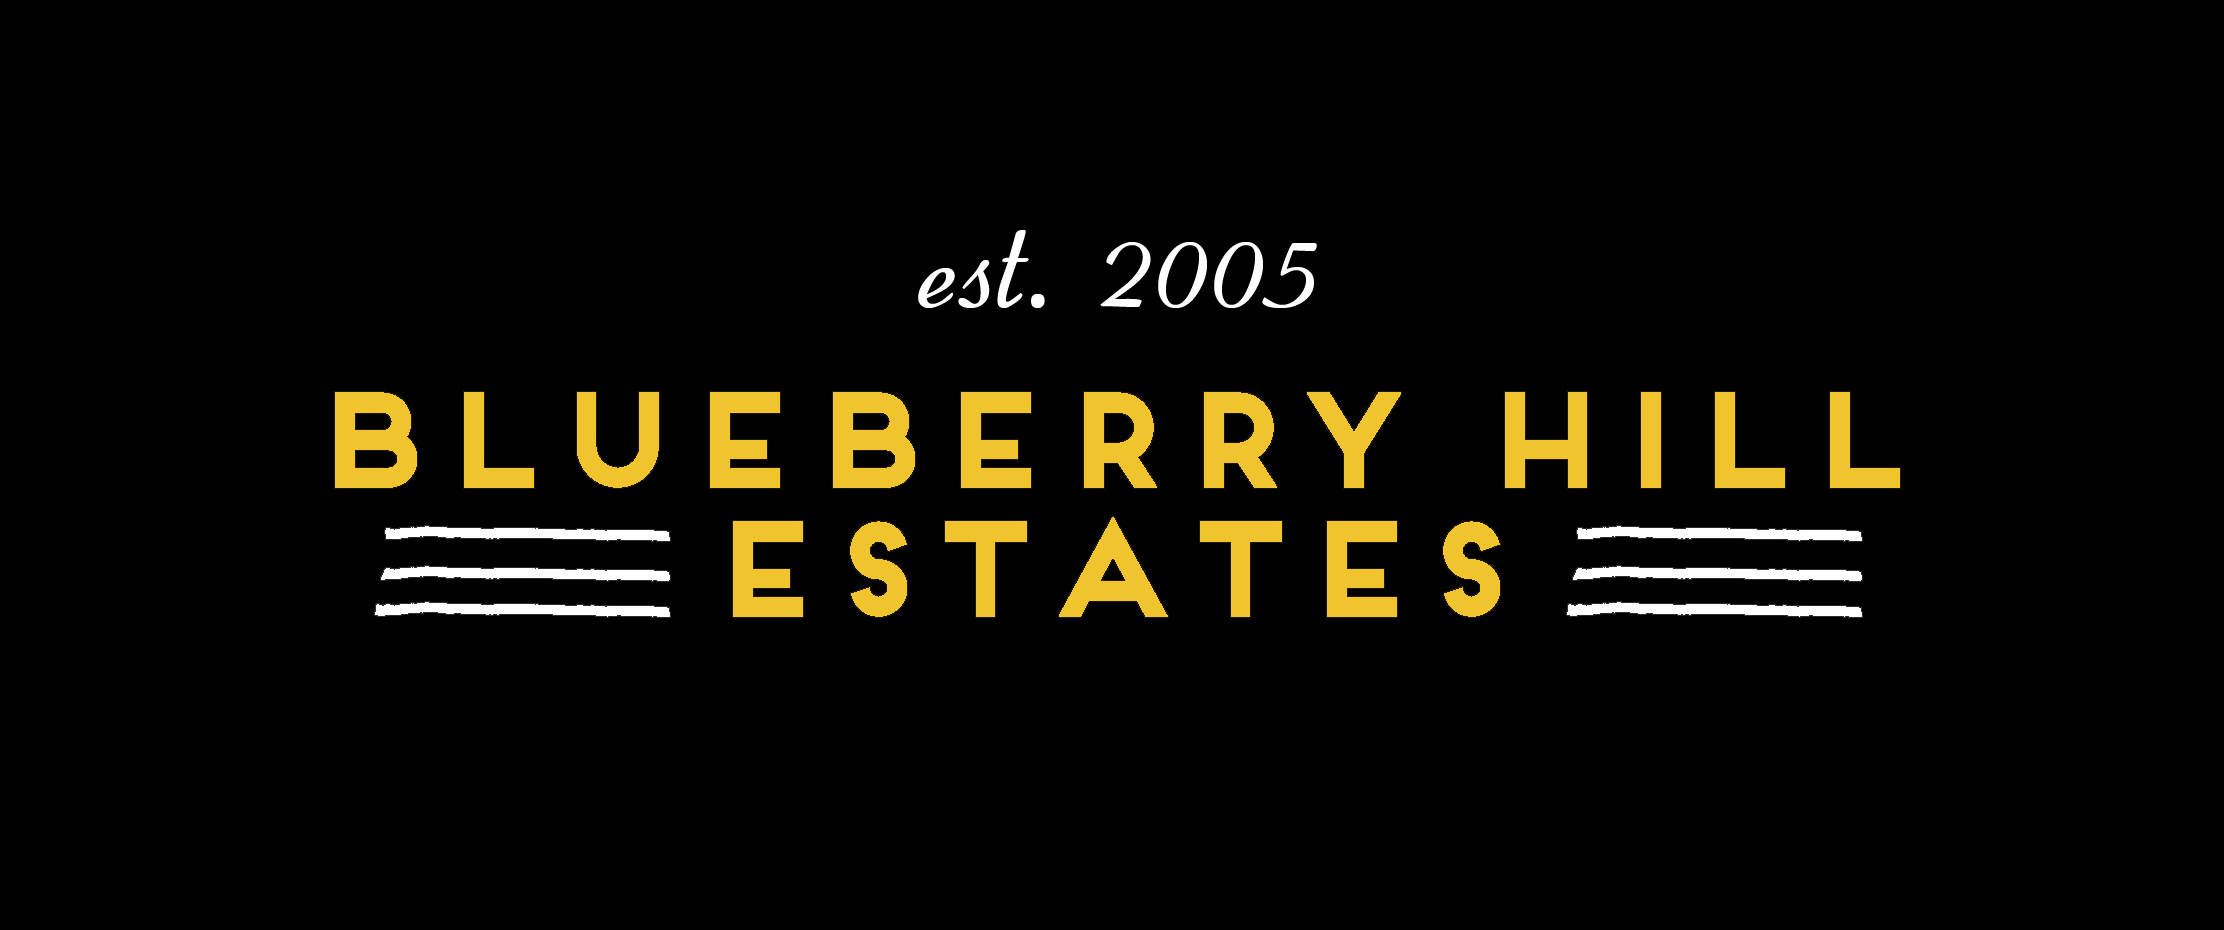 Blueberry Hill Estates Logo